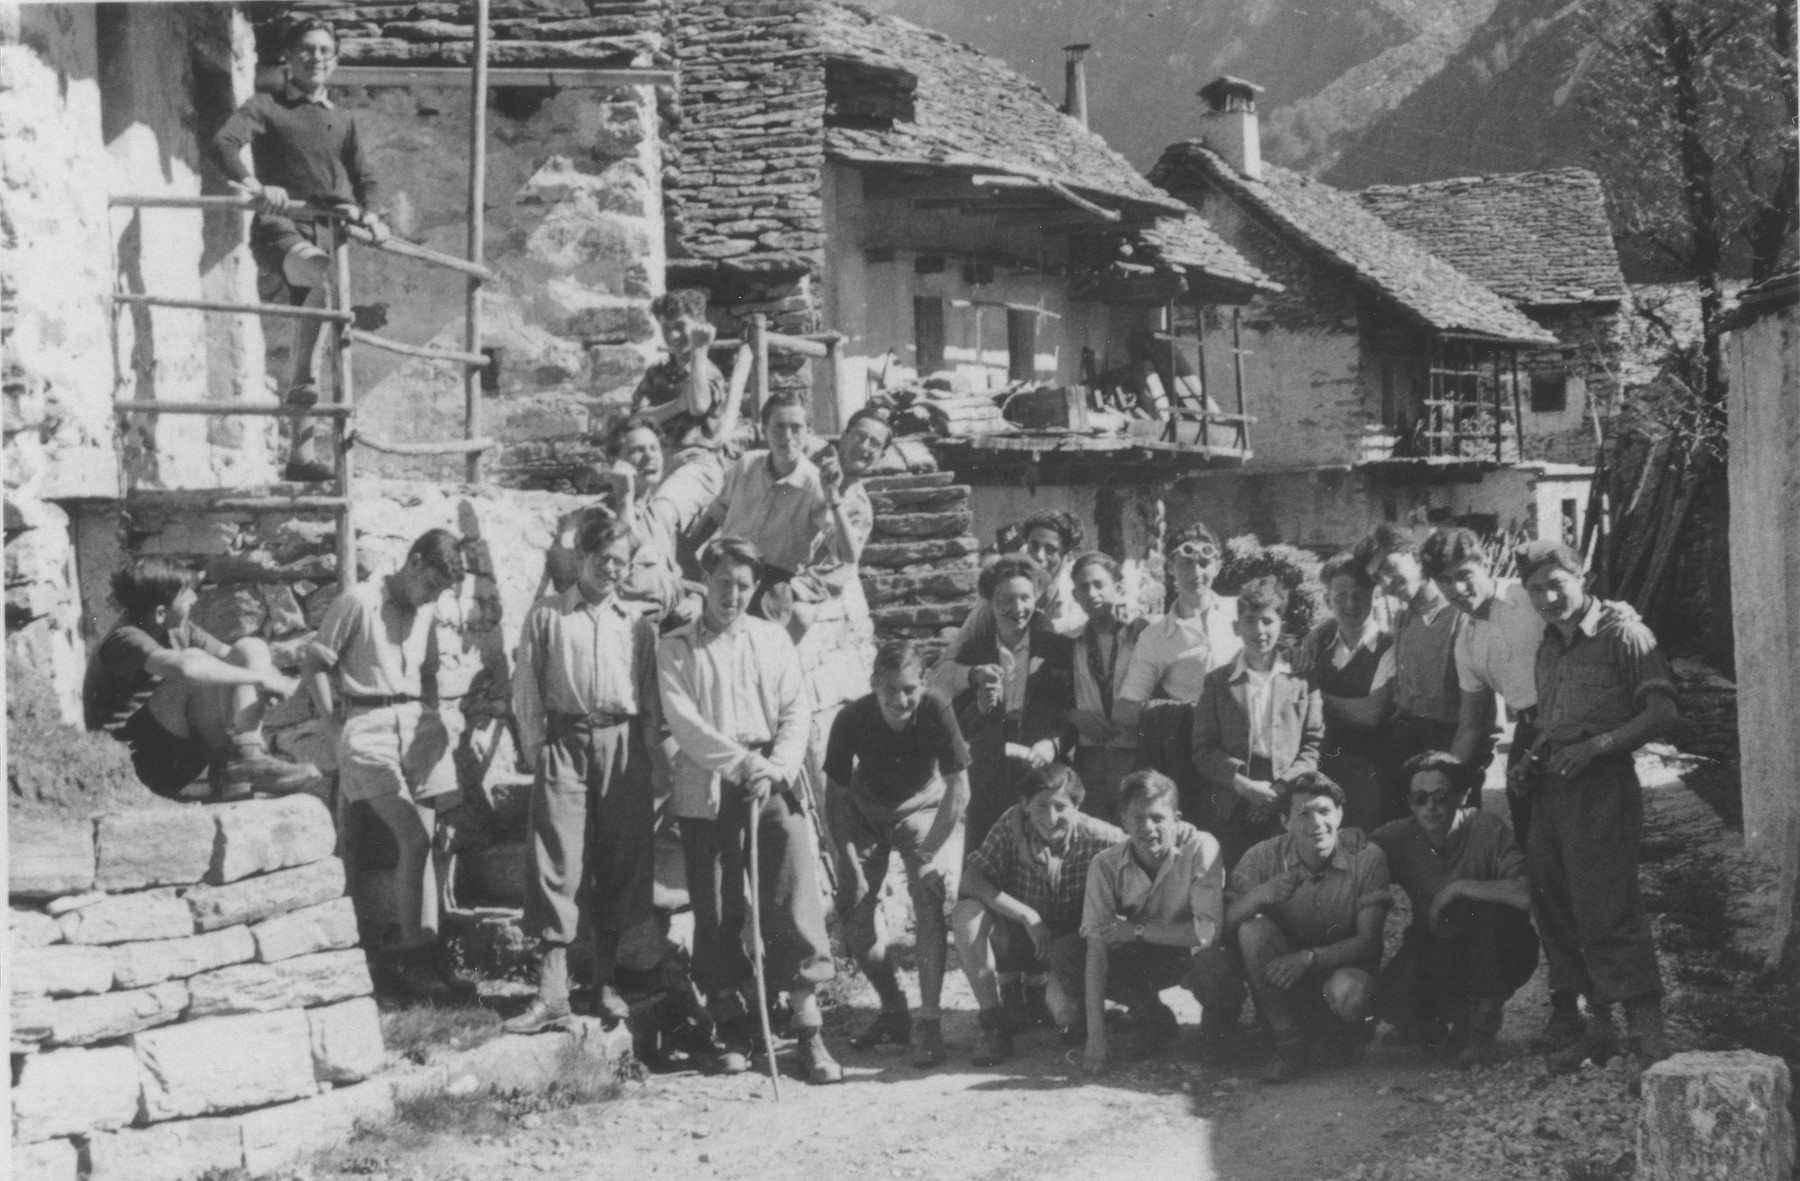 "Boys from the Hôme de la Forêt children's home pose in a rustic village during a summer excursion.  Those pictured include Henri Karnowsky, his brother, Heinz Dewald, and ""Jukoff""."